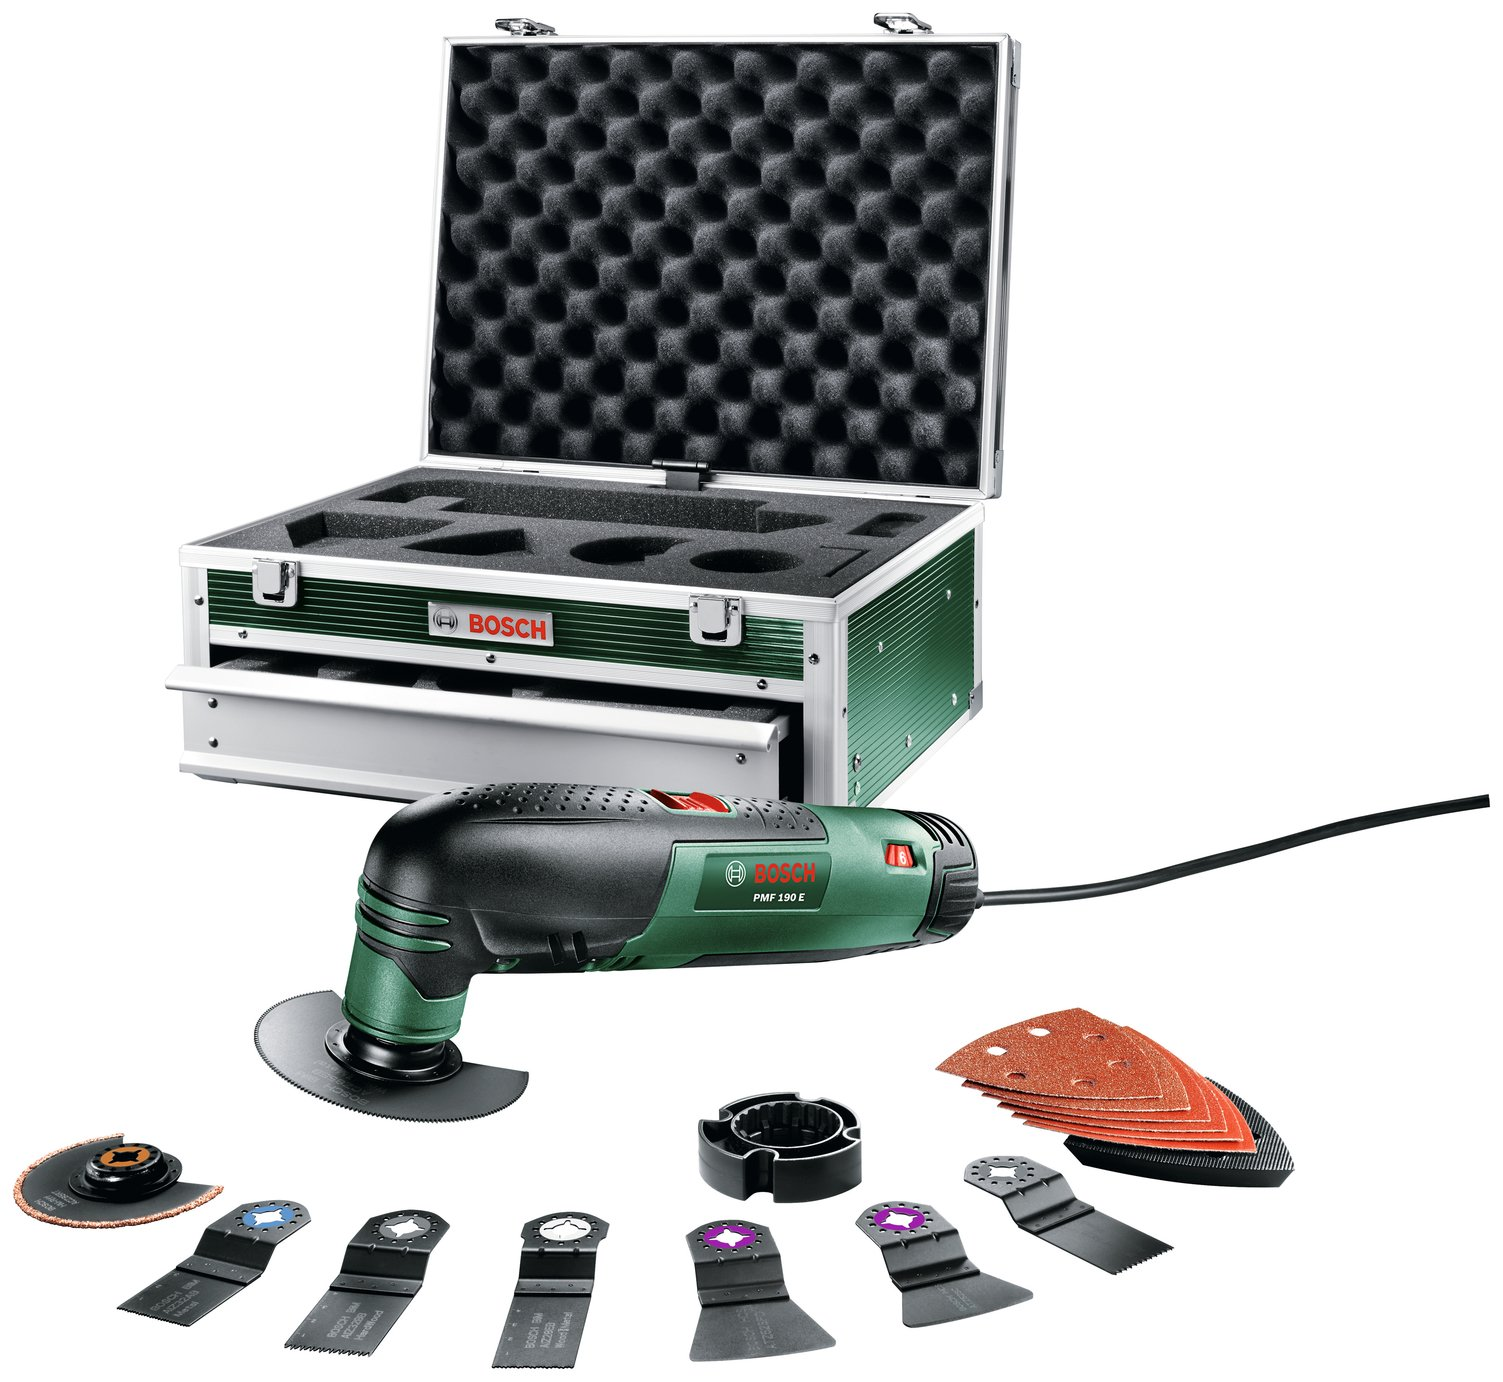 Image of Bosch PMF190 Multi Tool with 15 Accessories and Toolbox